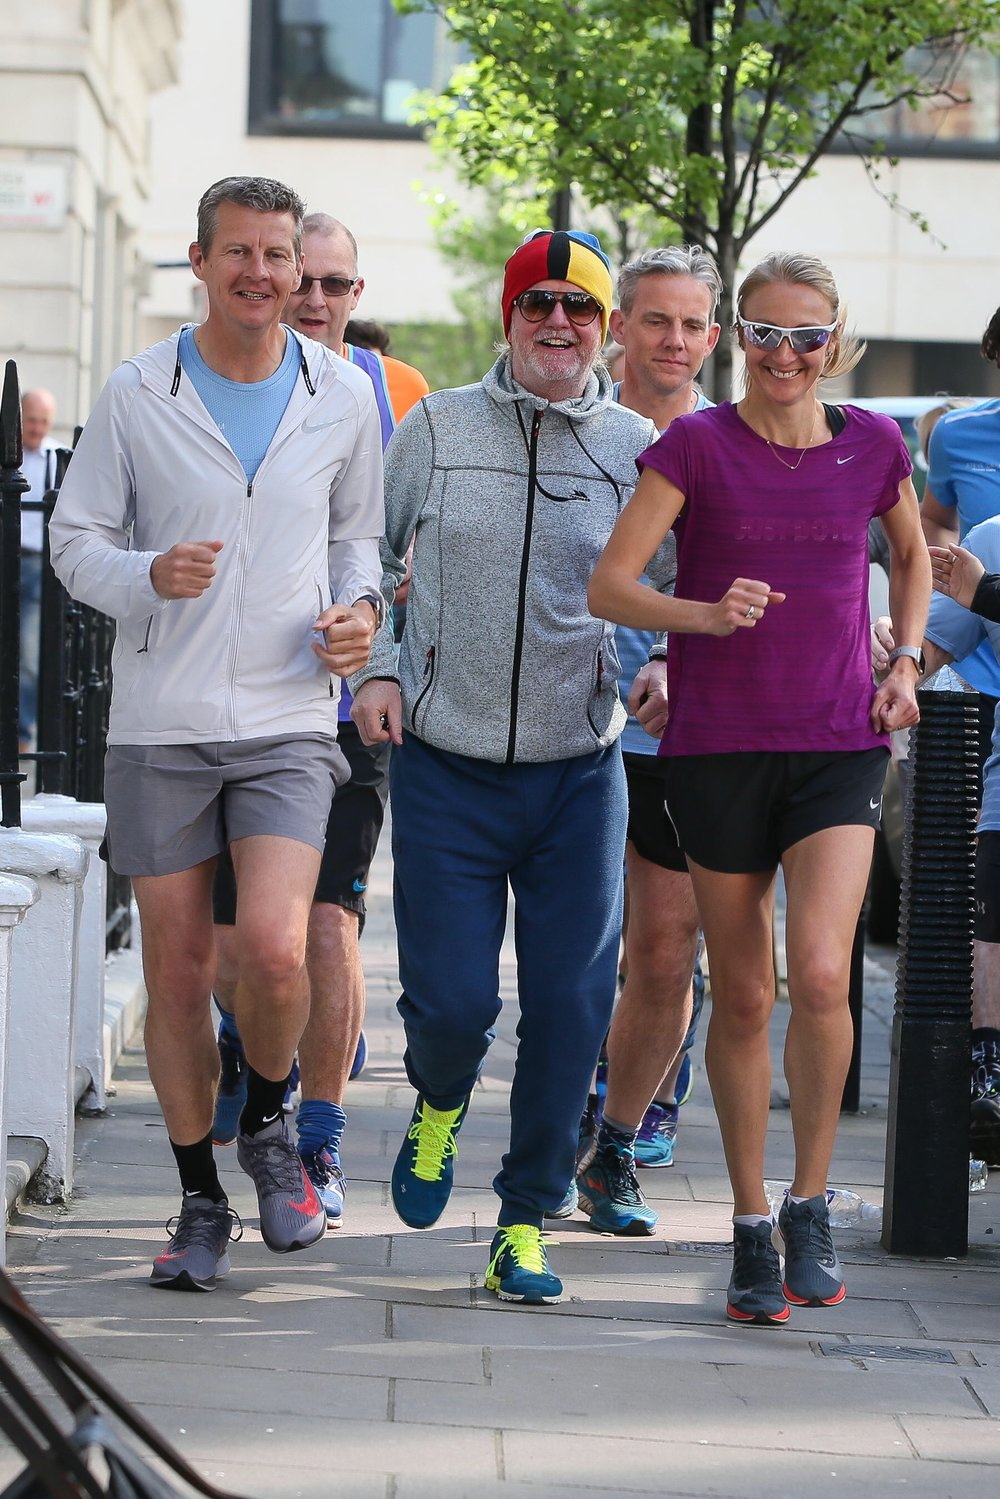 Steve Cram, Chris Evans and Paula Radcliffe launching the new RunFestRun event in Wiltshire in June